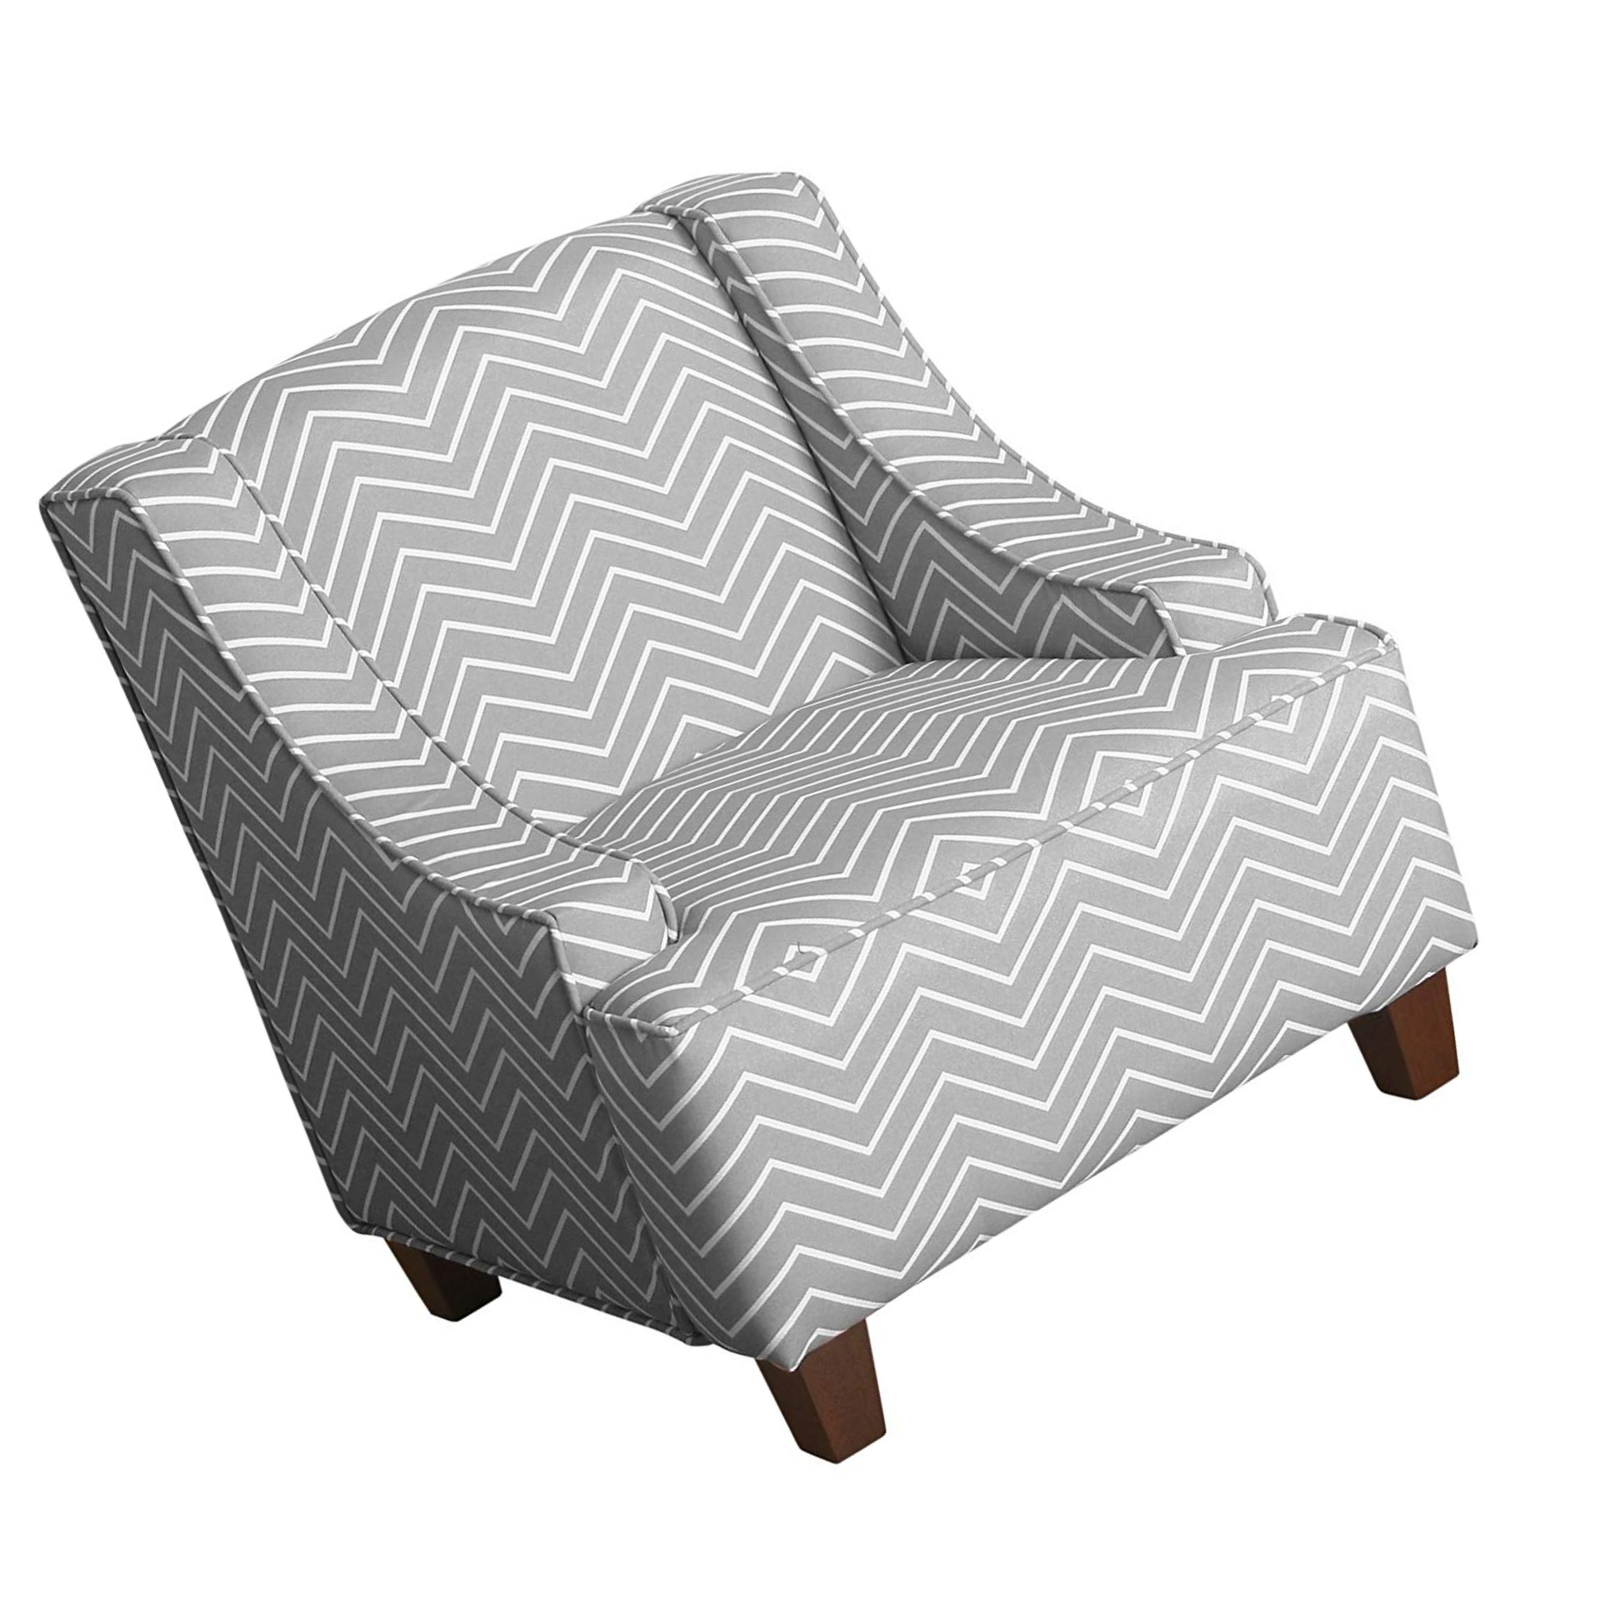 Cool Details About Homepop K6465 A795 Youth Upholstered Swoop Arm Accent Chair Grey And White Bralicious Painted Fabric Chair Ideas Braliciousco